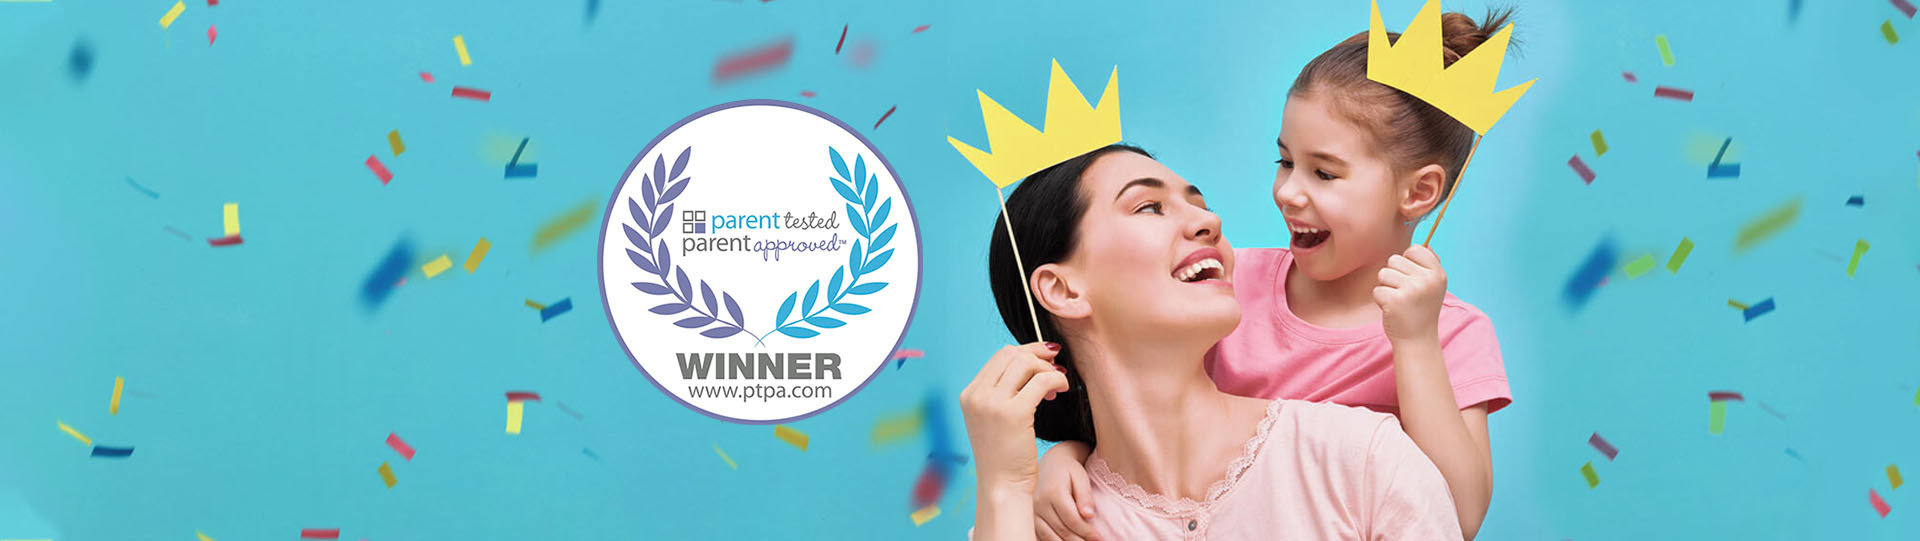 PTPA.com-Award-Winners-Parent-Tested-Parent-Approved